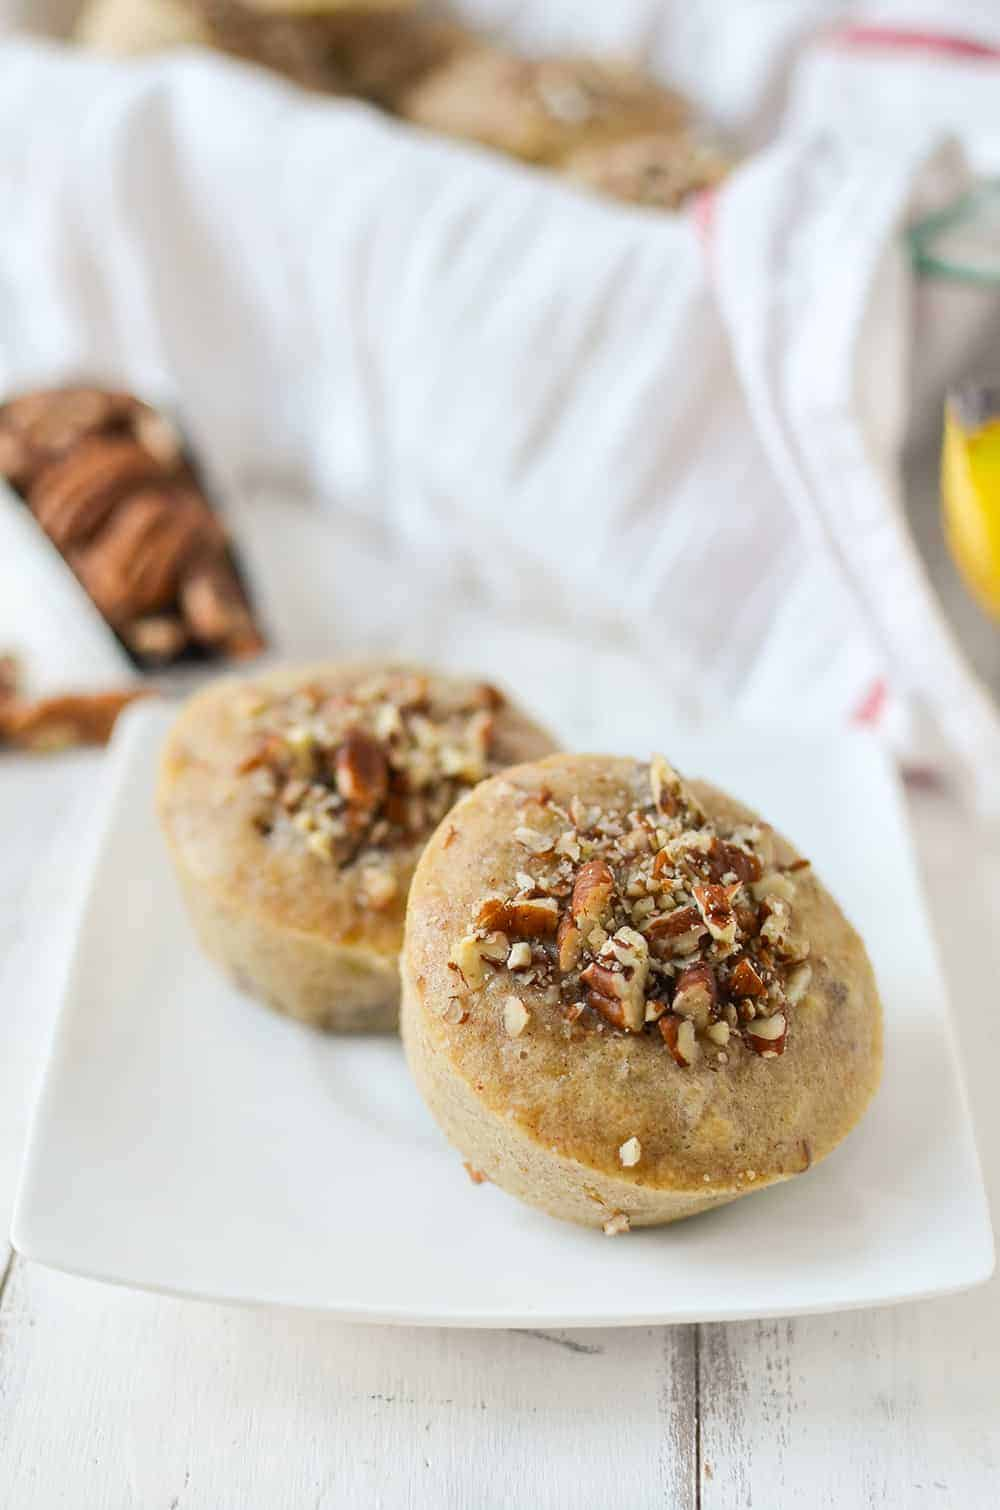 These healthy banana muffins are perfect for a light snack, breakfast or dessert!